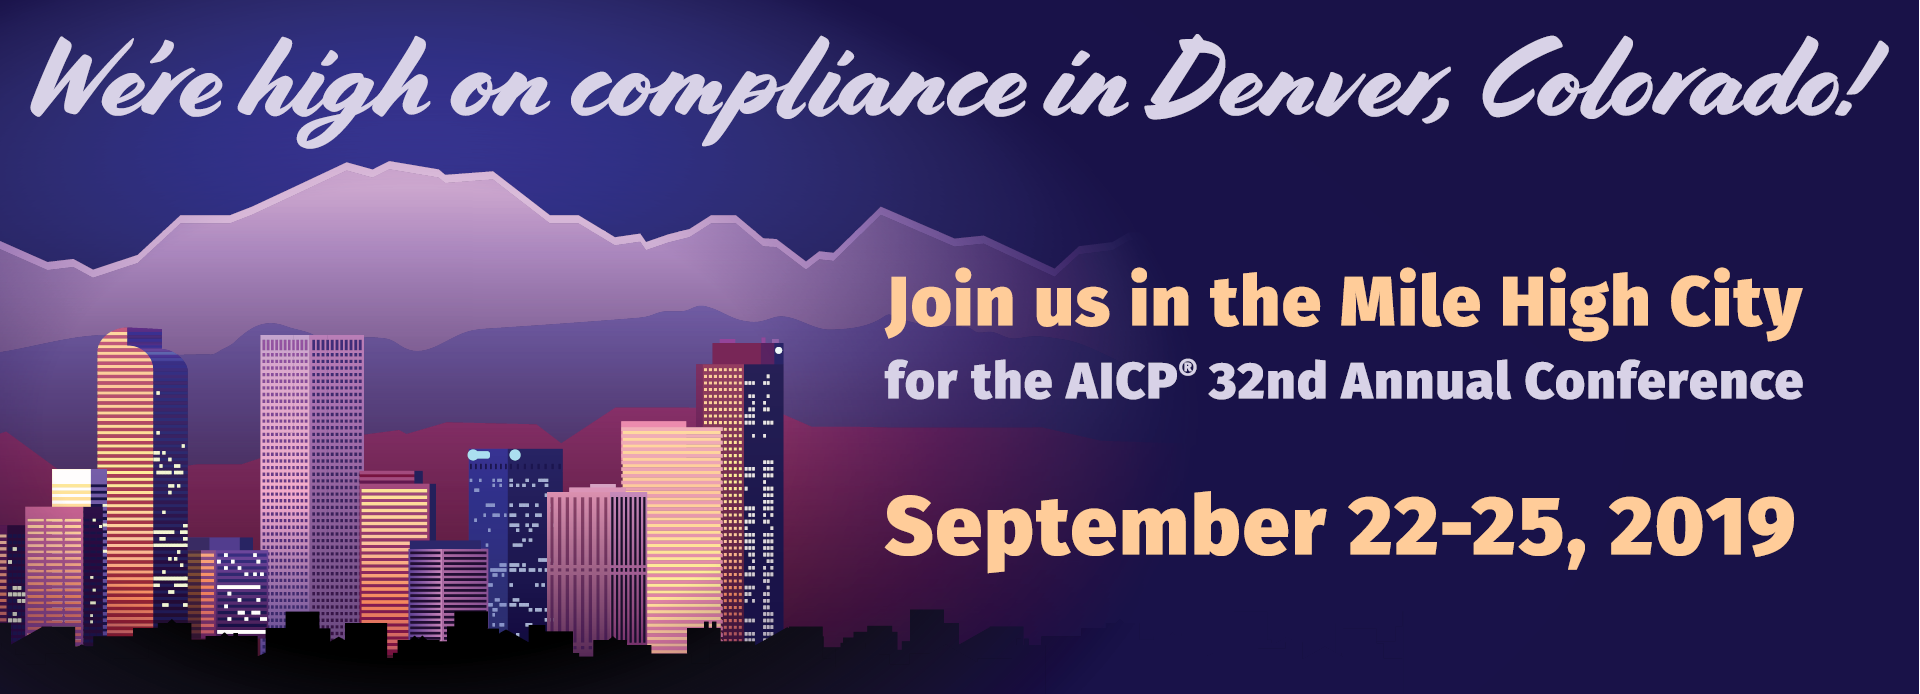 AICP 32nd Annual Conference